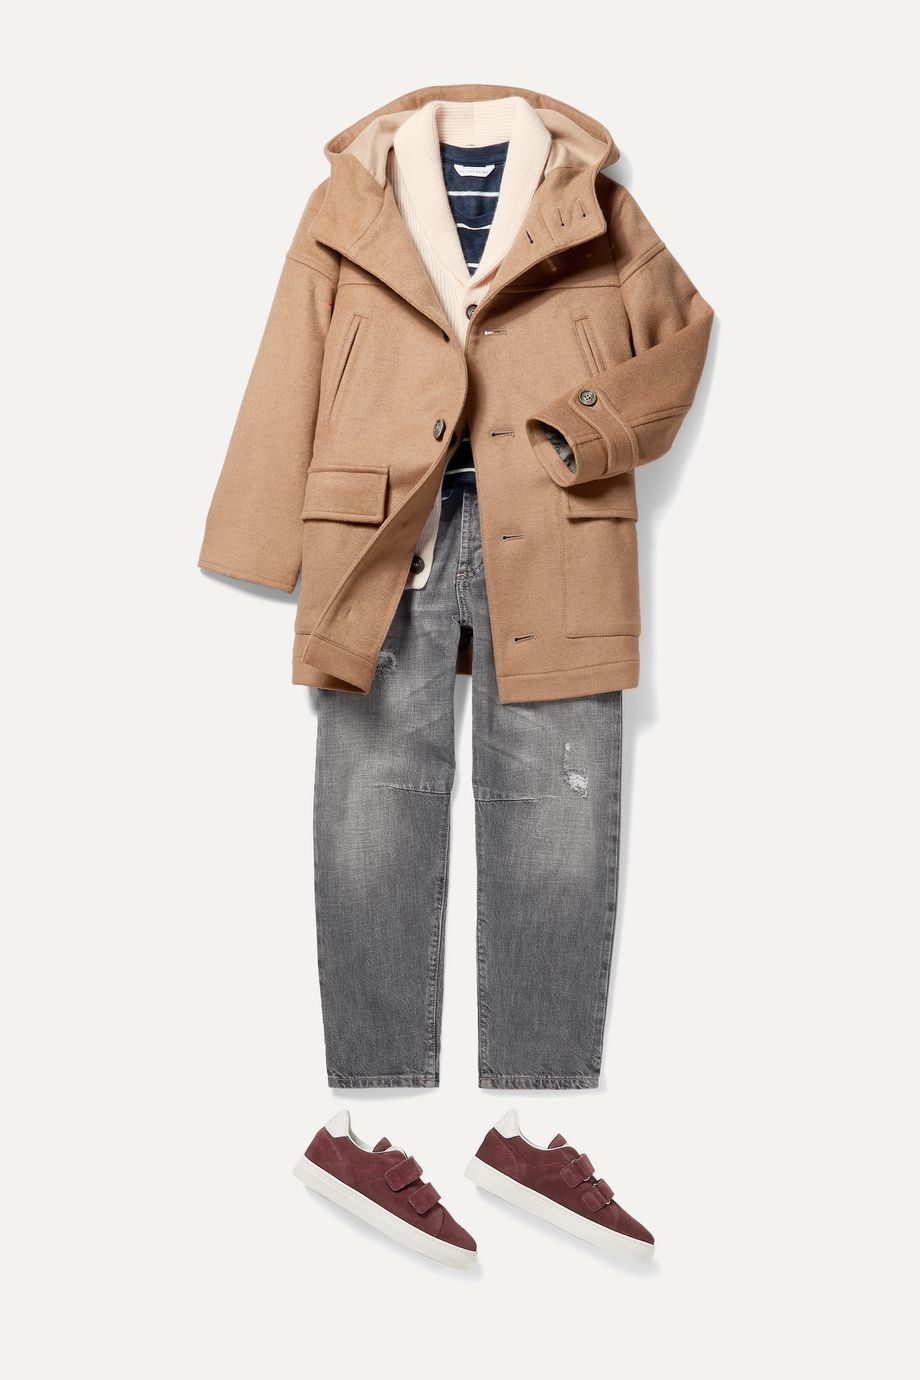 Brunello Cucinelli Kids Ages 8- 10 hooded cashmere-blend coat